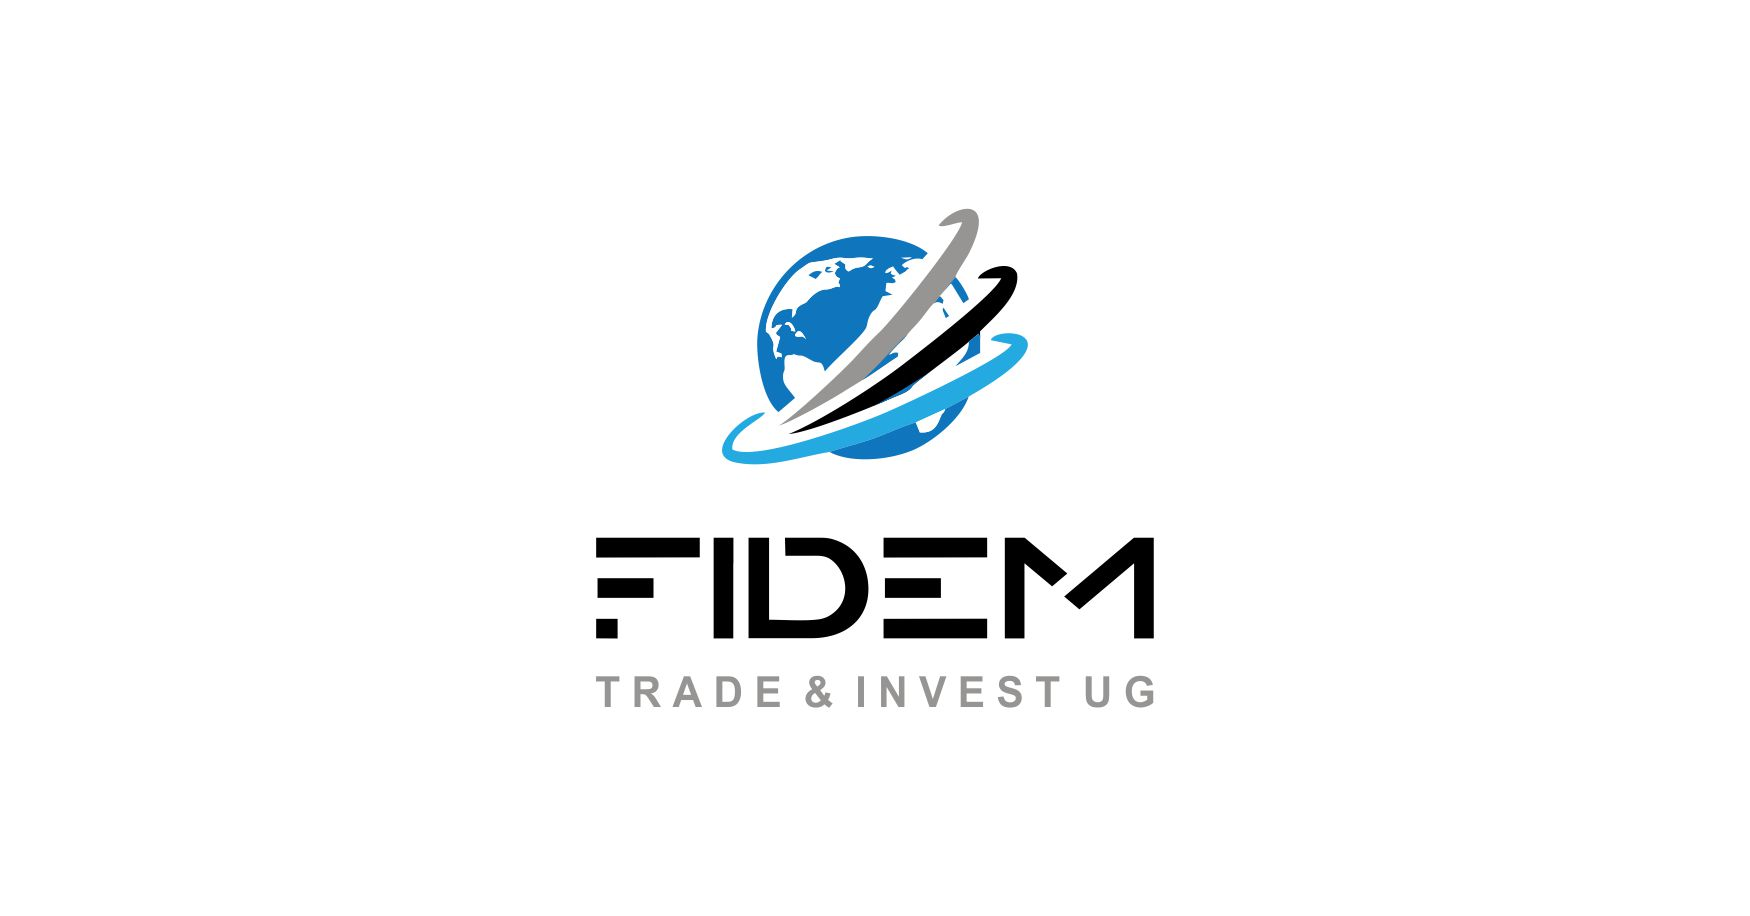 Logo Design by Muhammad Aslam - Entry No. 268 in the Logo Design Contest Professional Logo Design for FIDEM Trade & Invest UG.